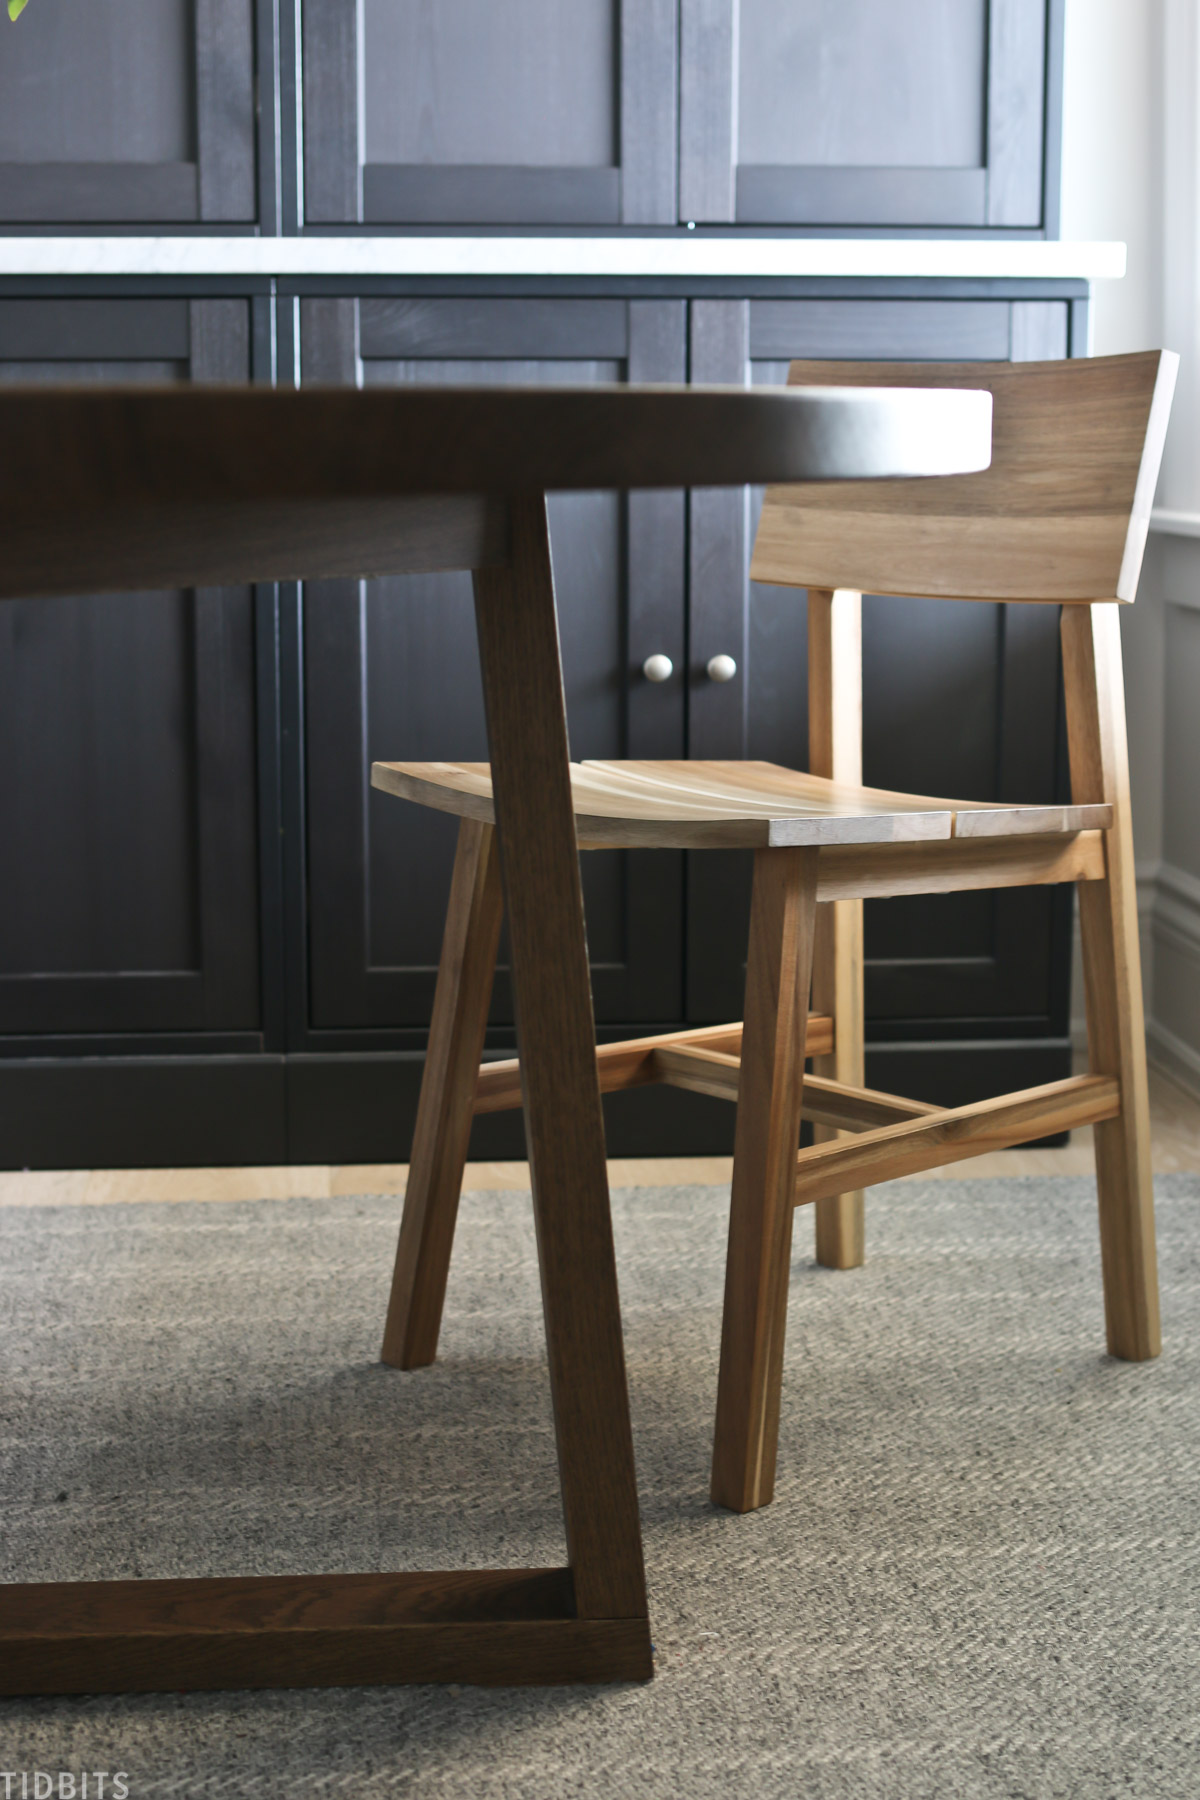 wooden chair placed next to roundtable